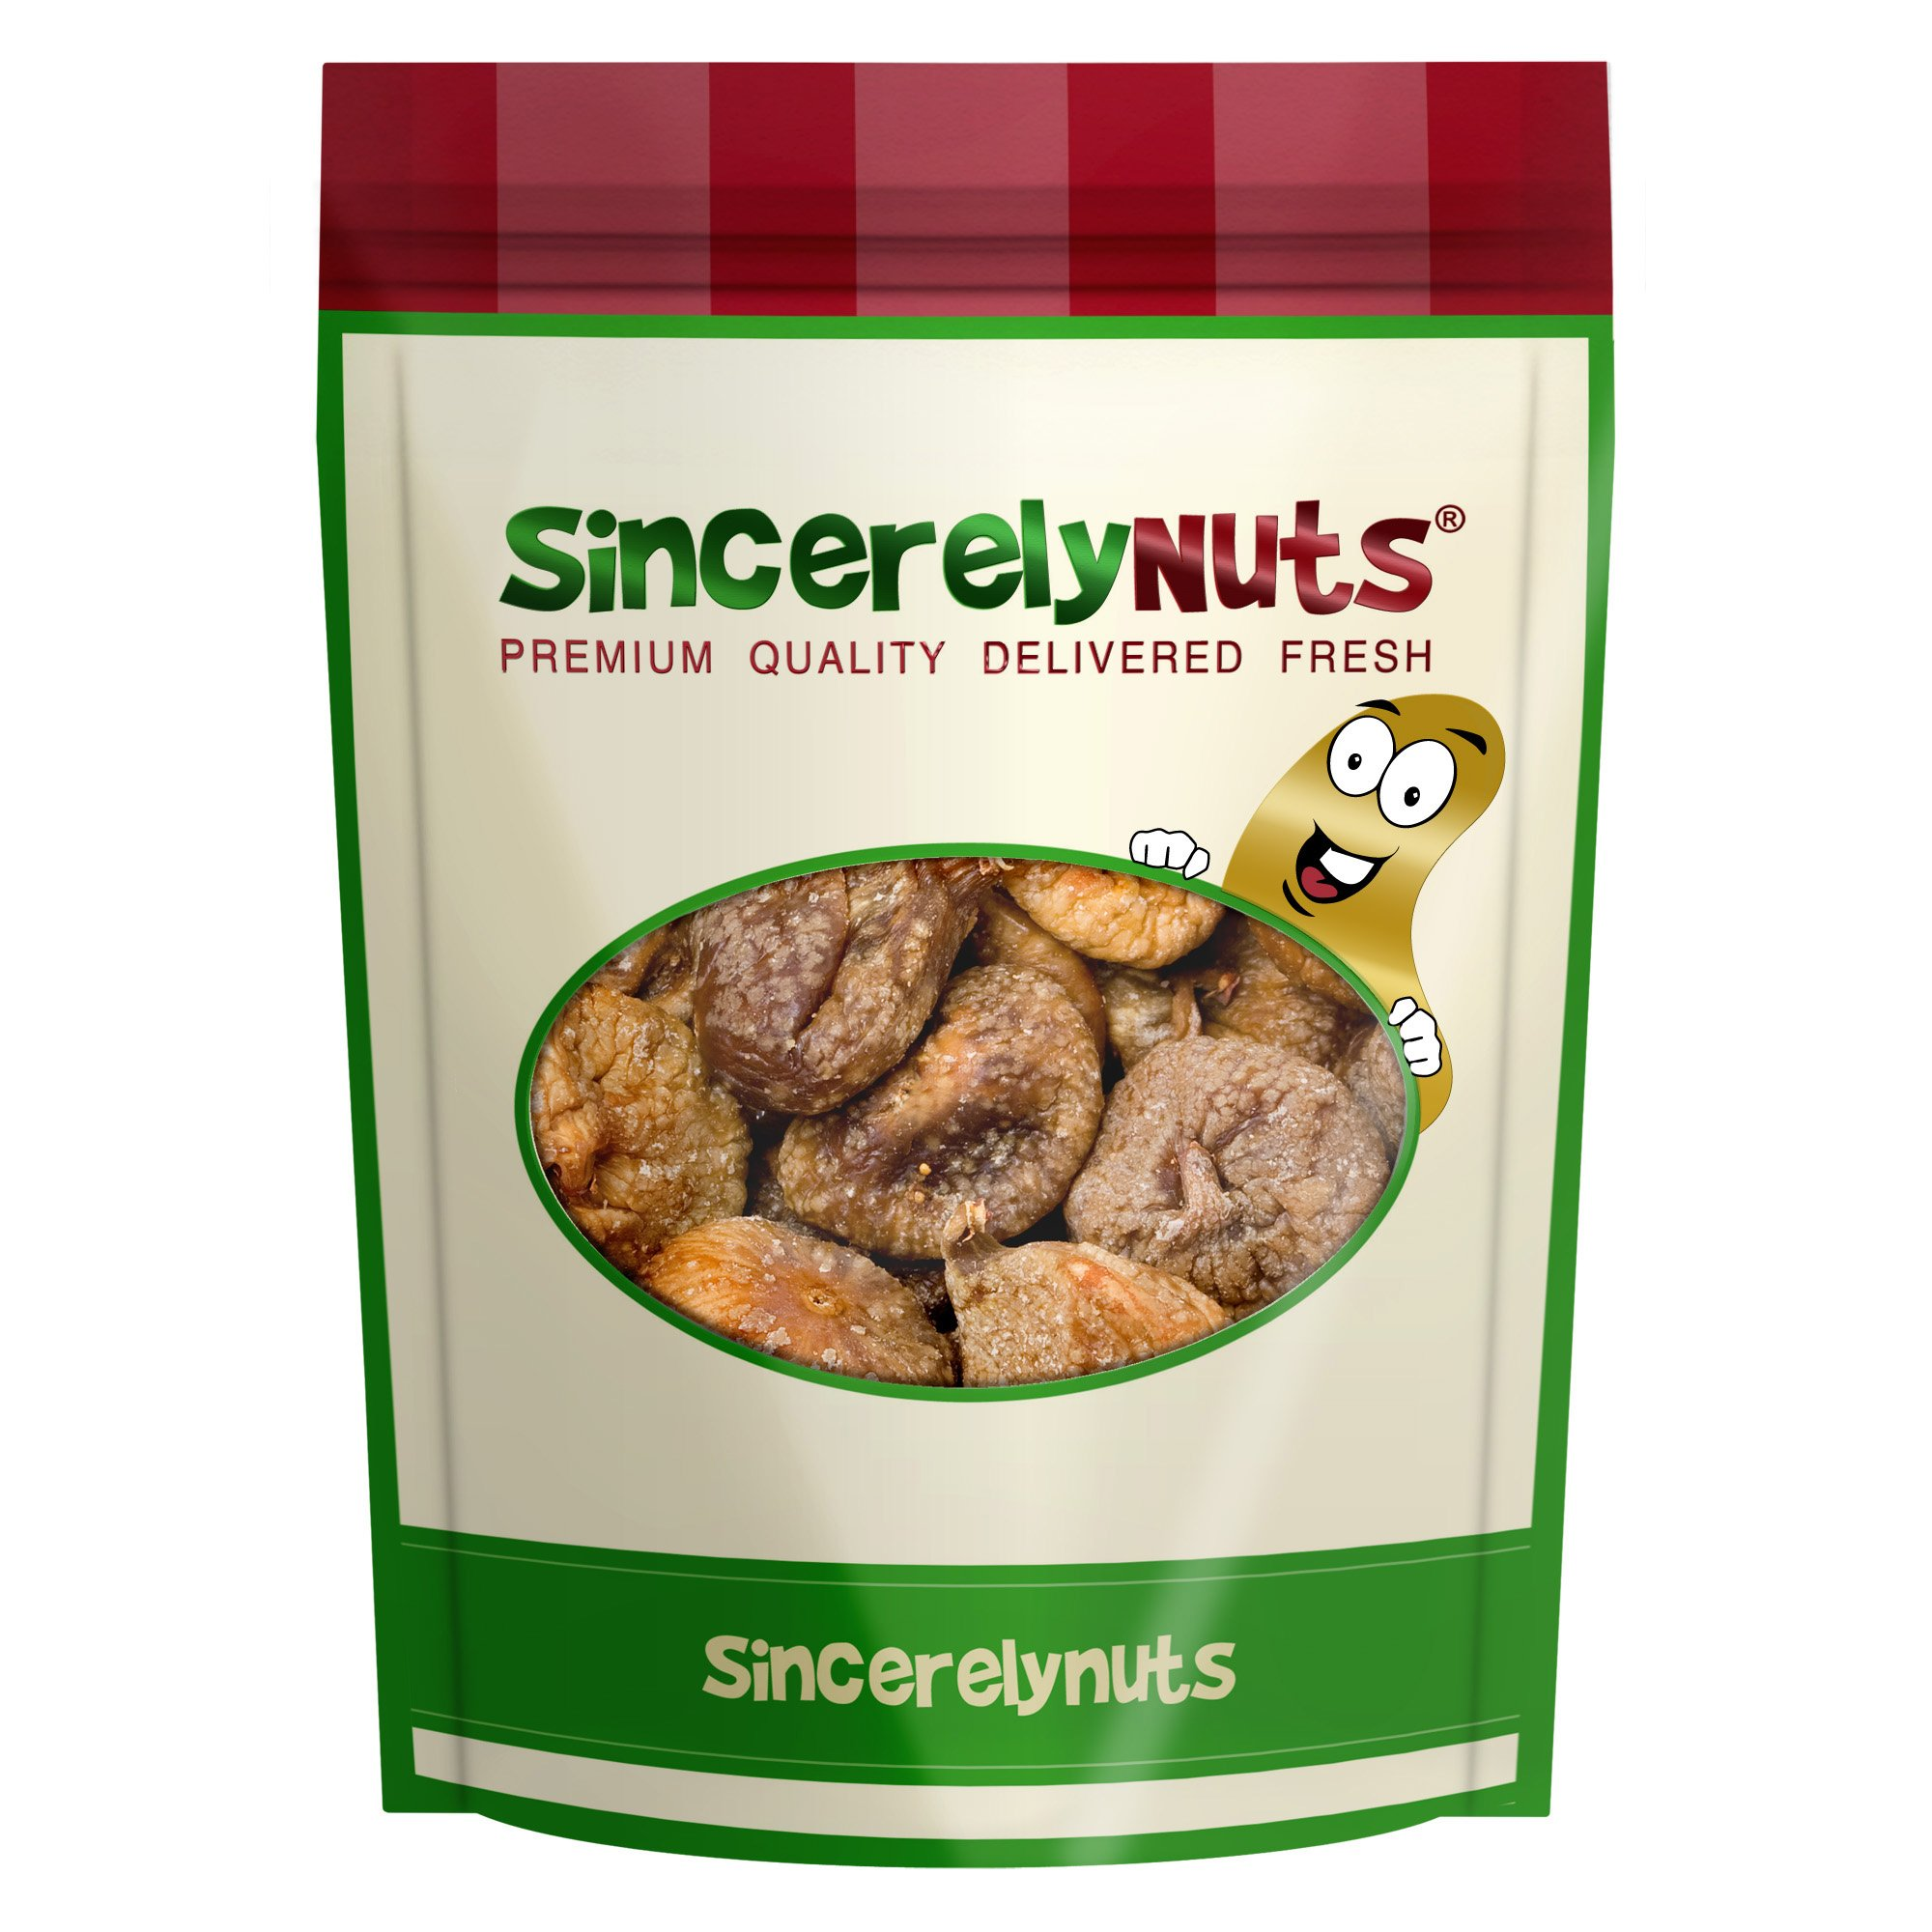 Sincerely Nuts Certified Organic Dried Turkish Figs - Three Lb. Bag - Astoundingly Appetizing - Sealed for Freshness - Nutrient Rich - Kosher Certified